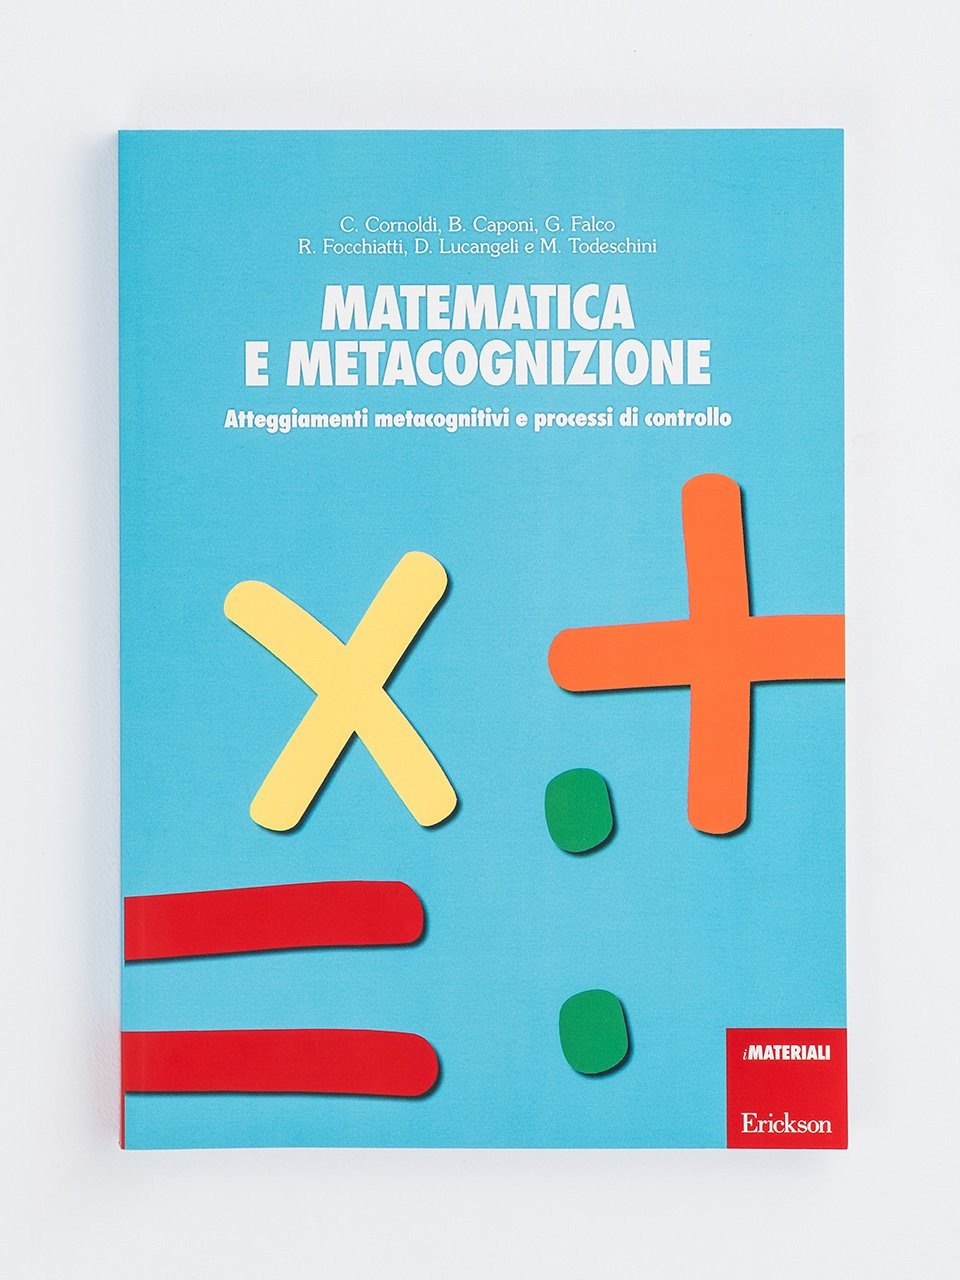 Matematica e metacognizione - Discalculia test - App e software - Erickson